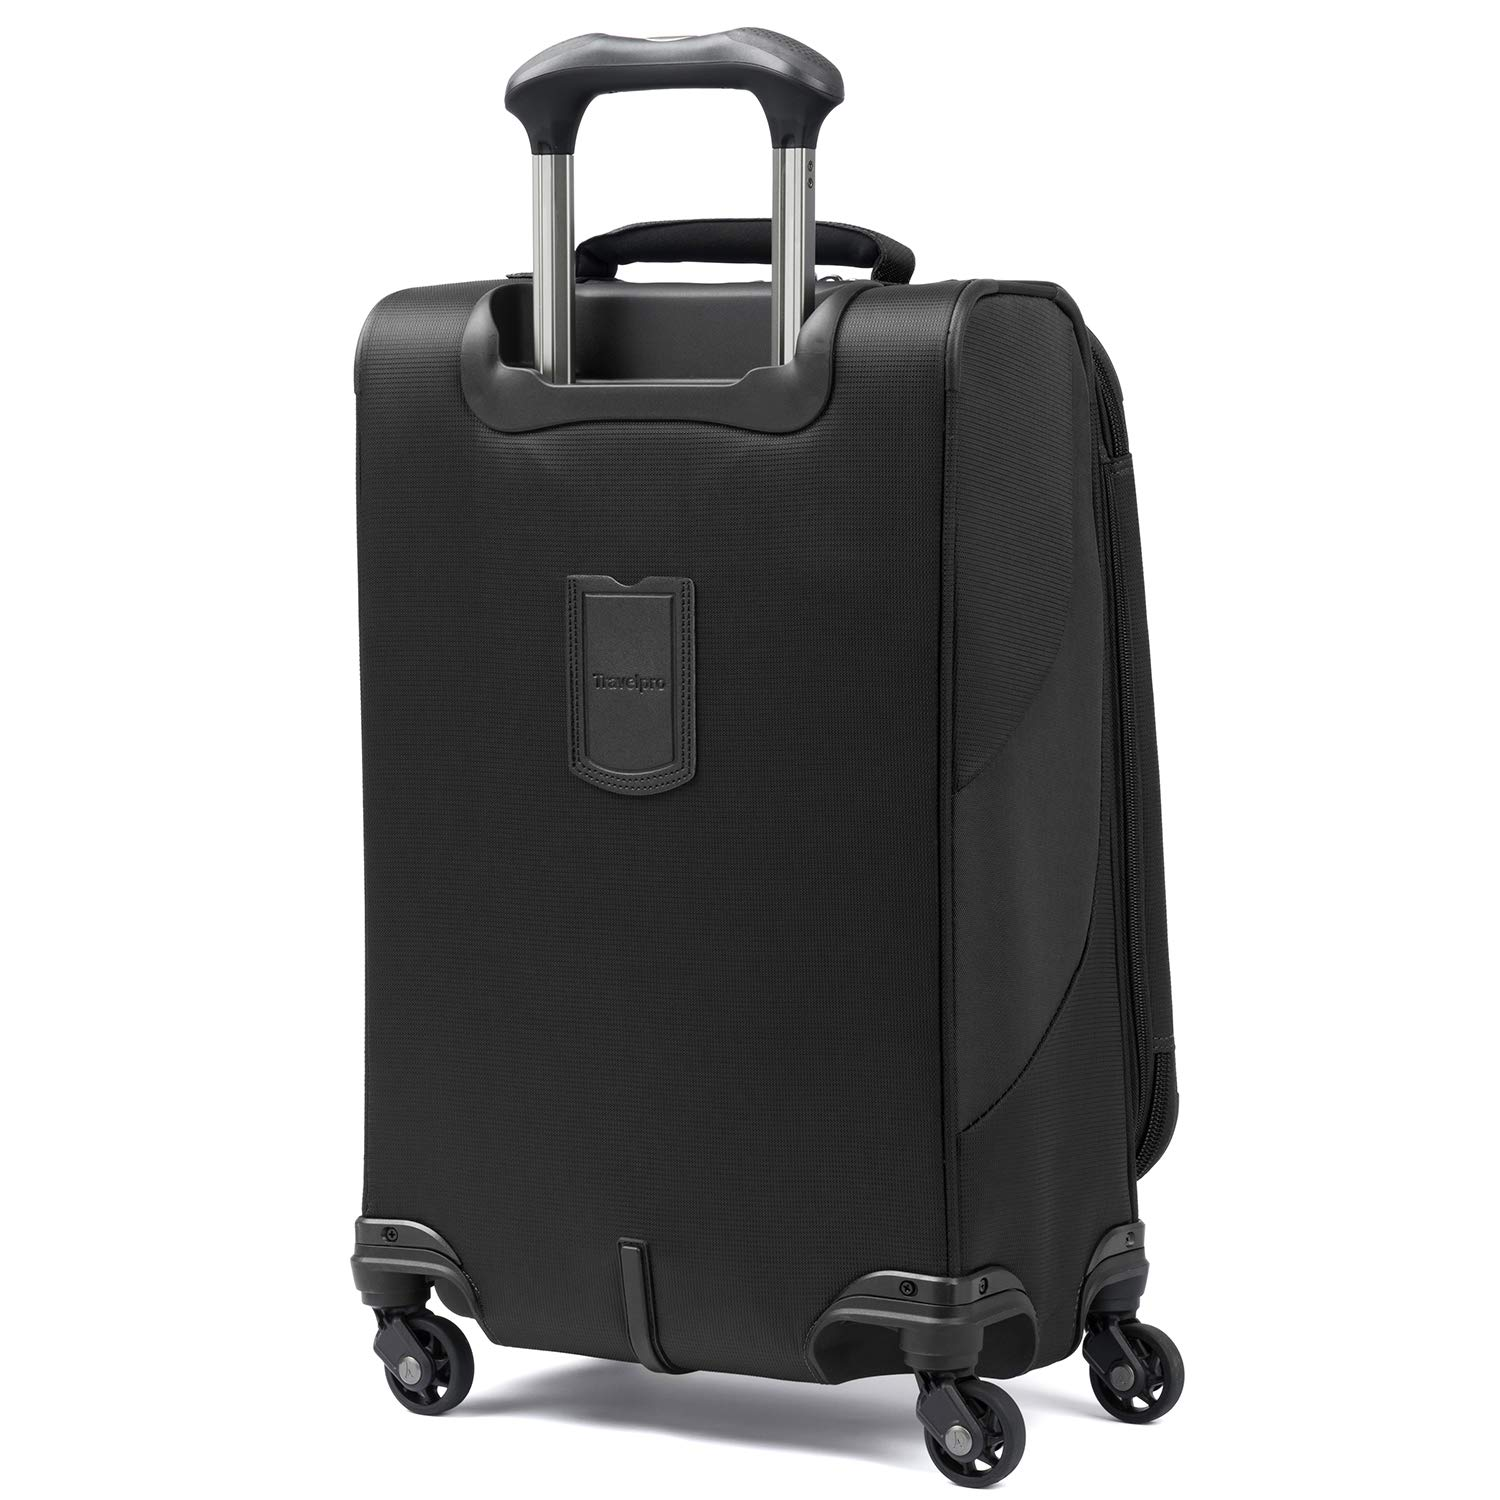 Travelpro Maxlite 4 Expandable 21 Inch Spinner Suitcase, Black by Travelpro (Image #2)